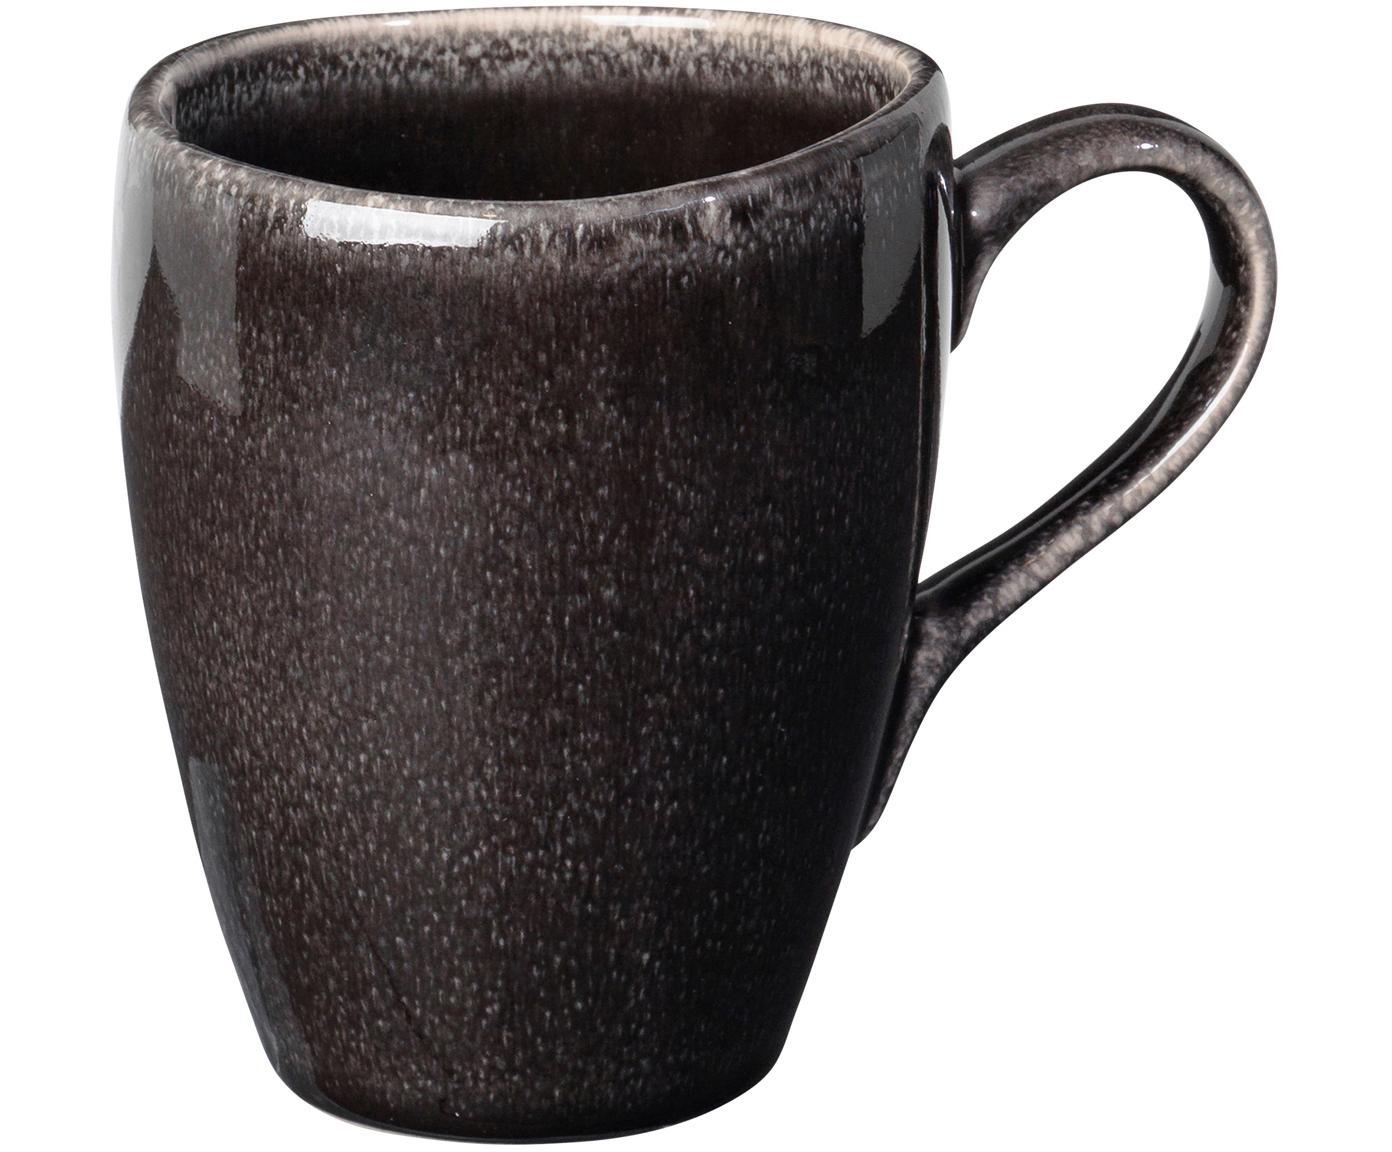 Tazza in terracotta fatta a mano Nordic Coal 6 pz, Terracotta, Marrone scuro, Ø 8 x Alt. 10 cm